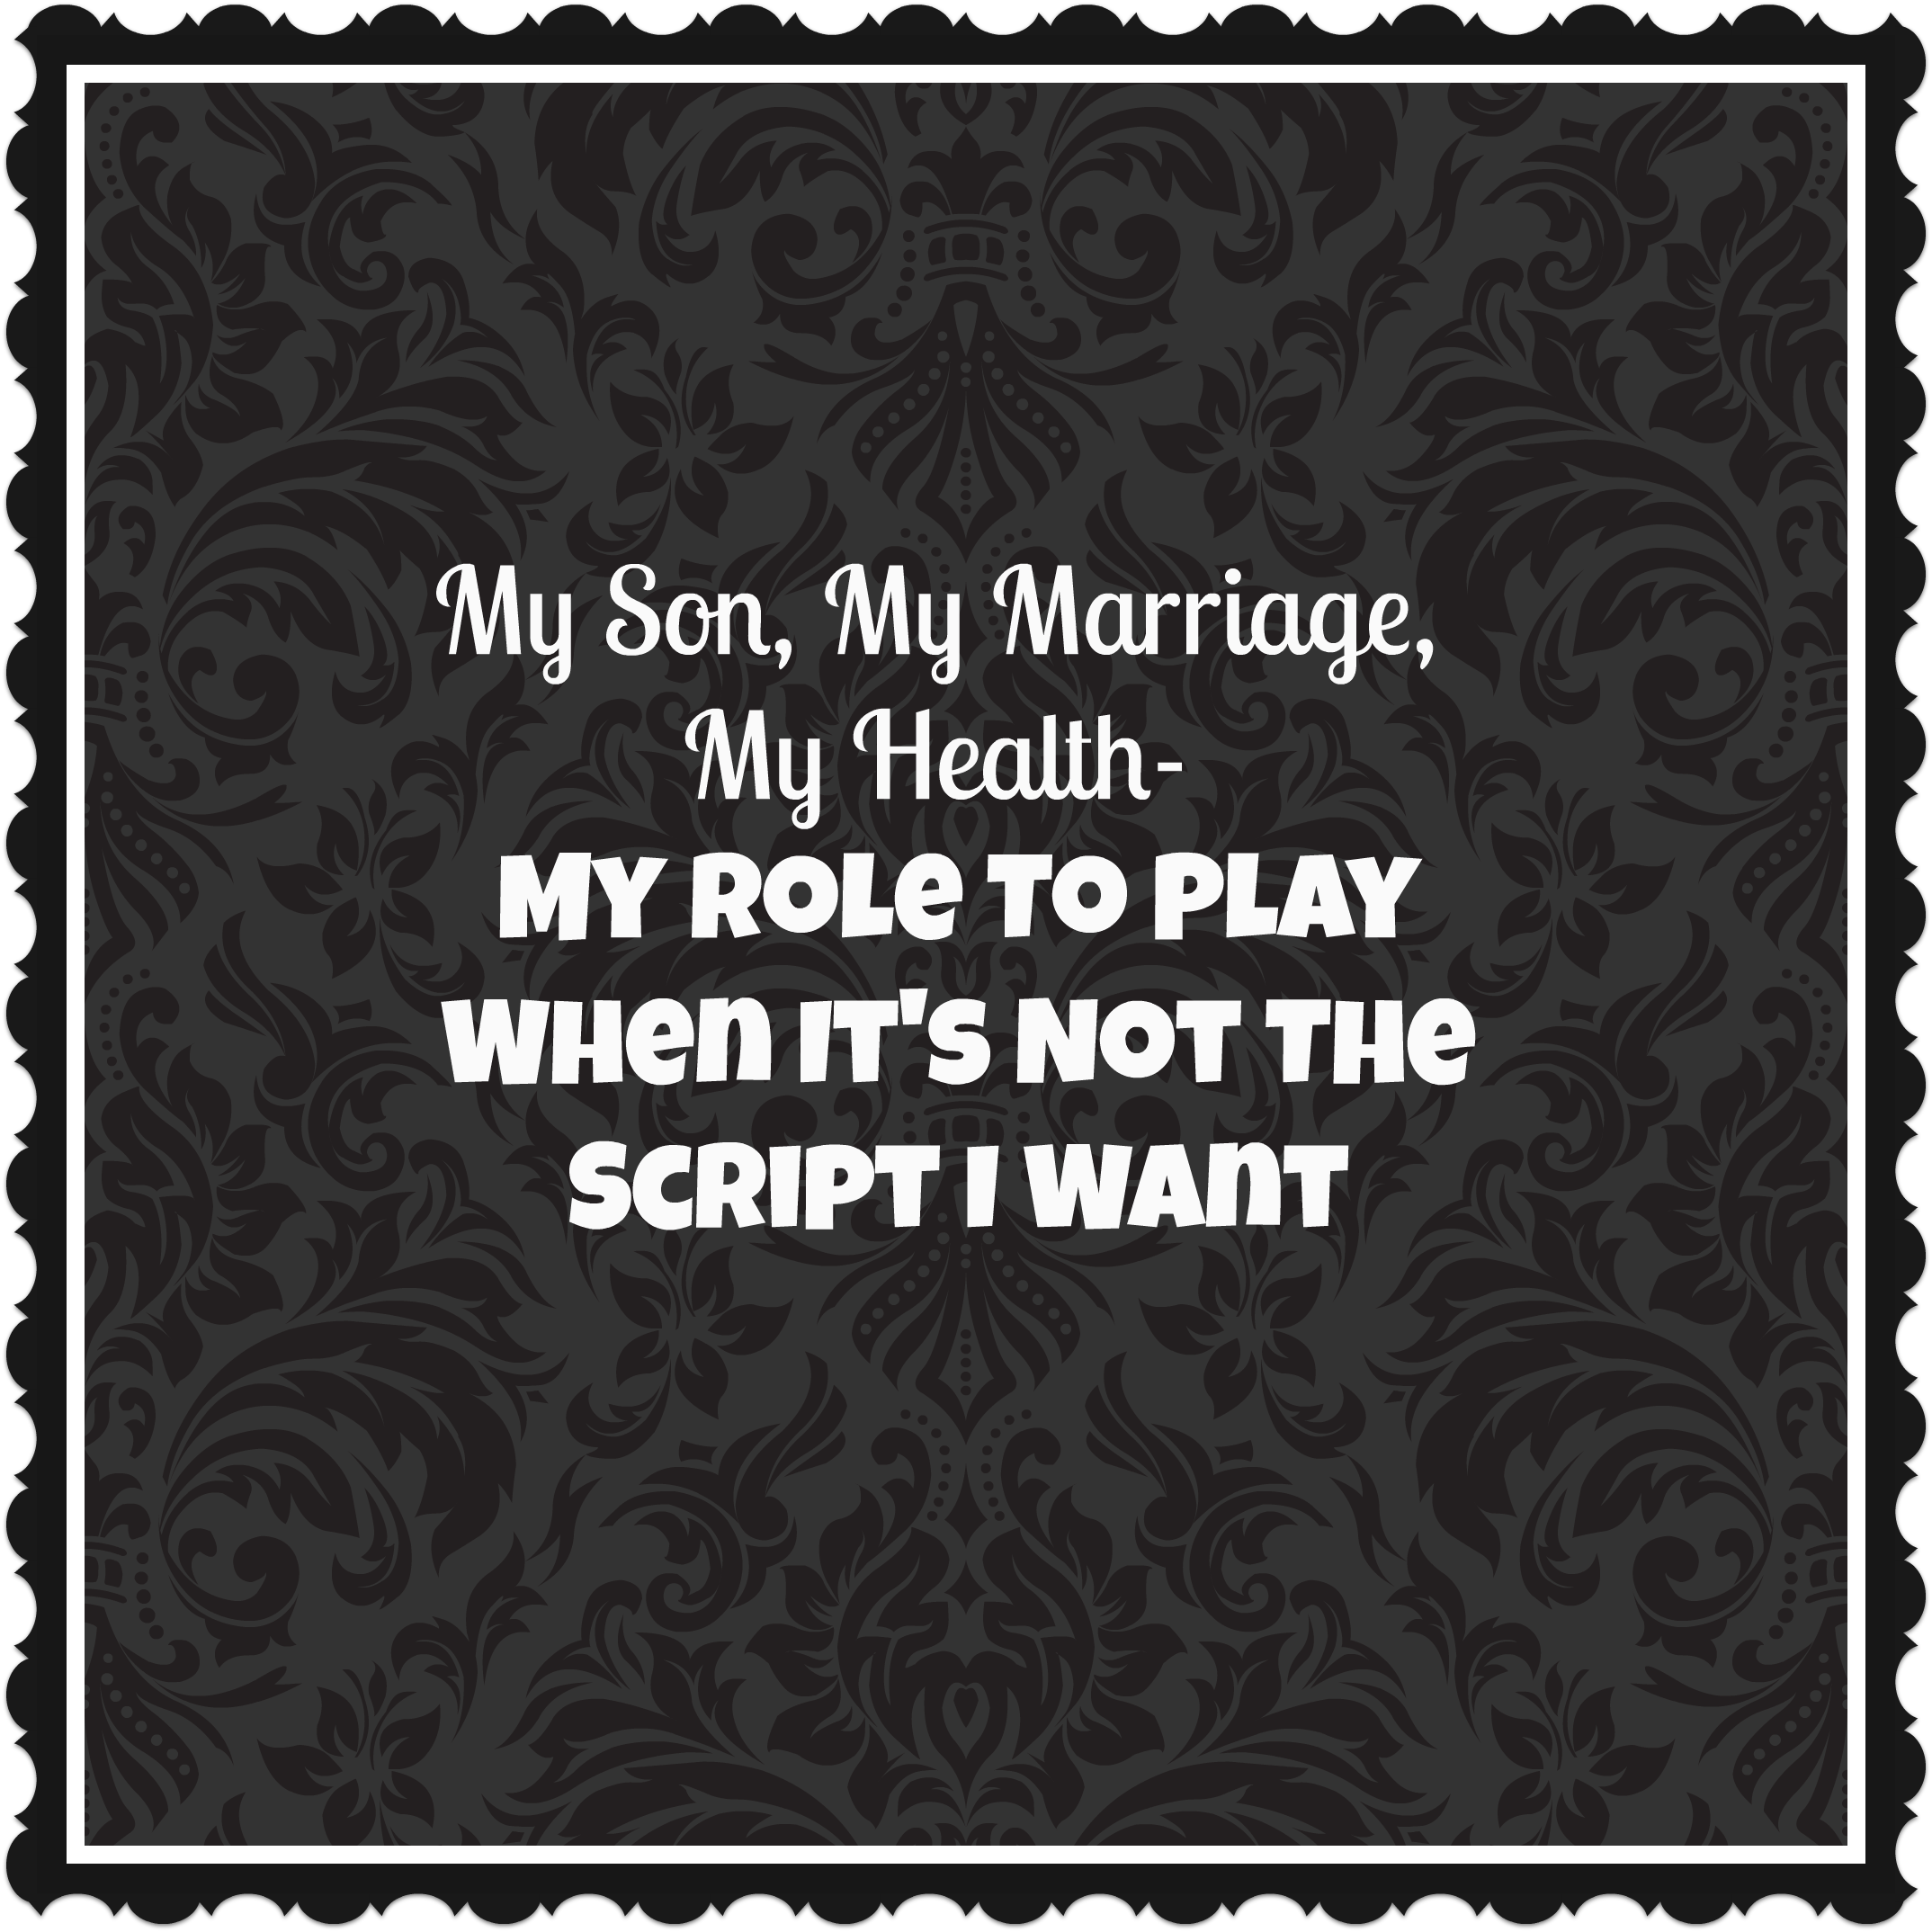 My Son, My Marriage, My Health-My Role To Play When It's Not The Script I Want